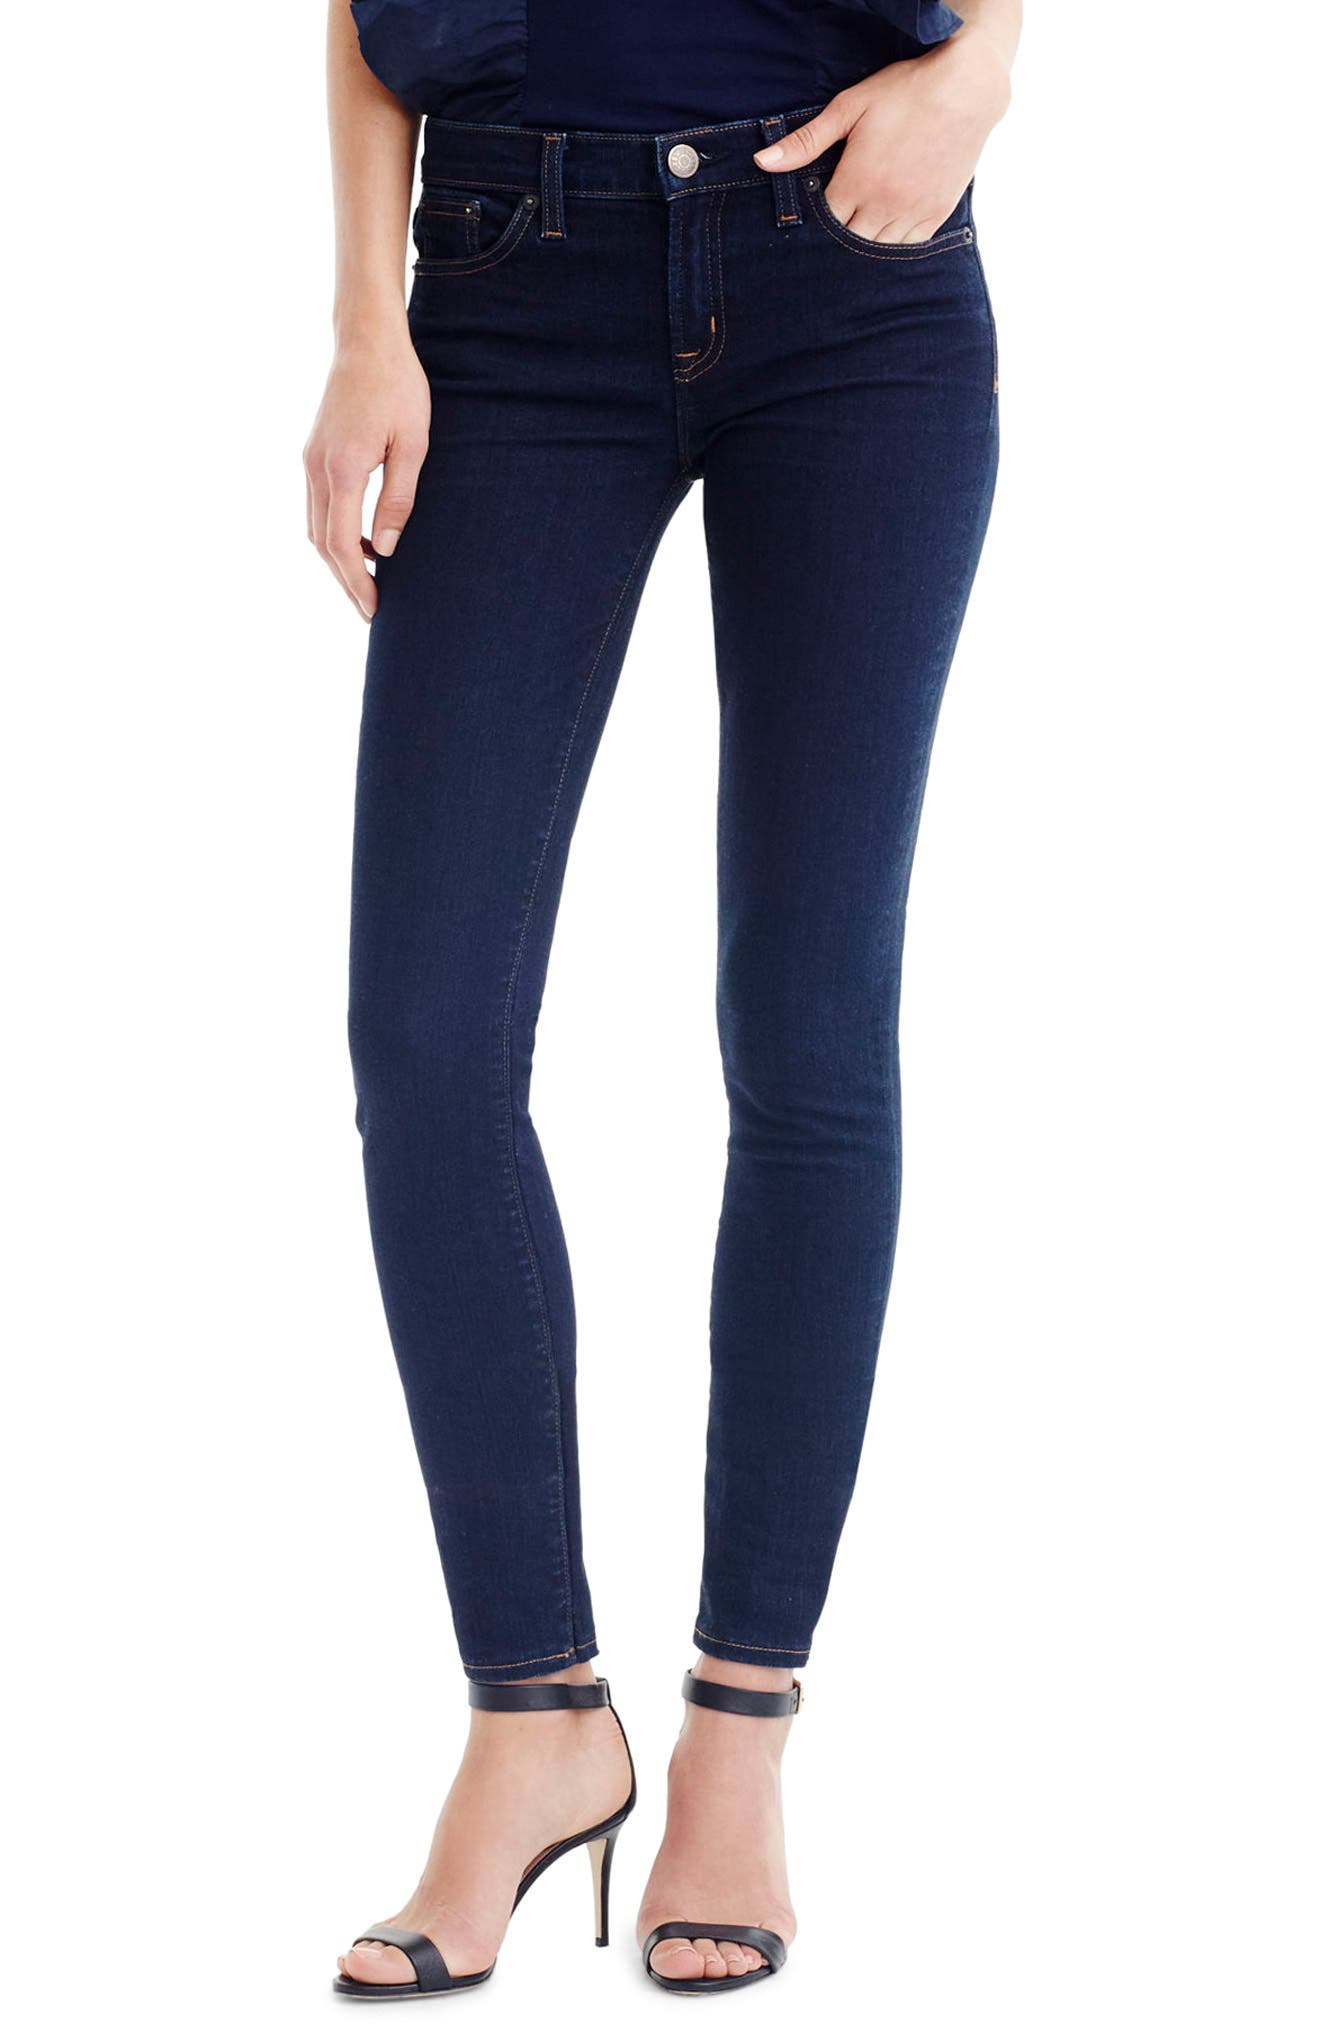 J.Crew Toothpick Jeans (Classic Rinse)